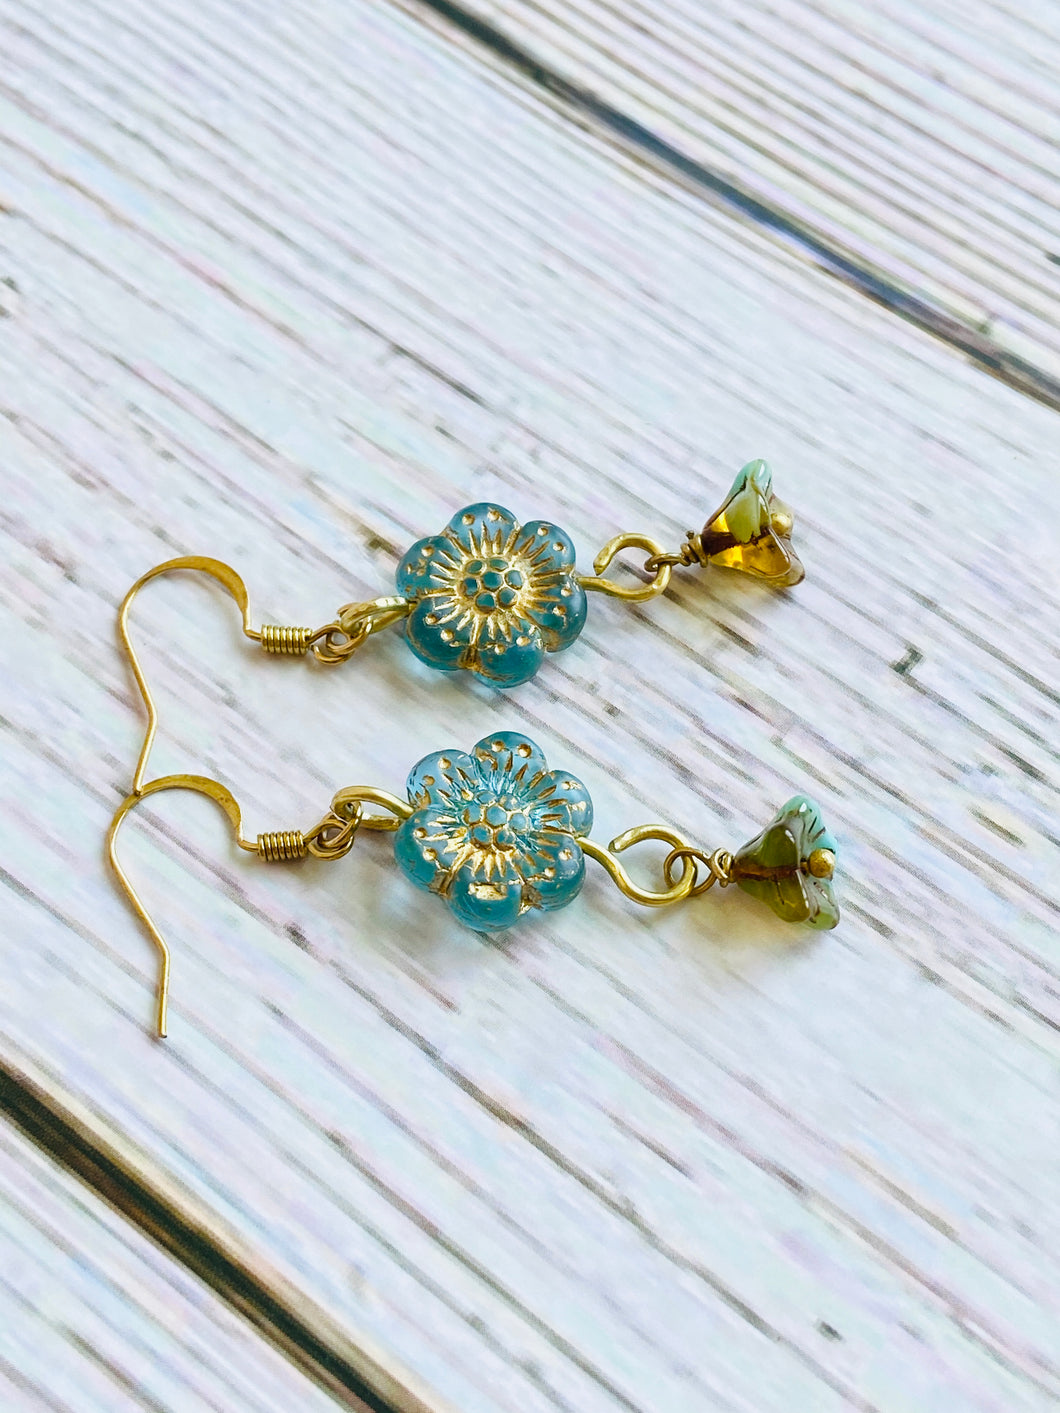 Aqua & Gold Flower Dangle Earrings - Black Cat Modern Boho Handmade Jewelry